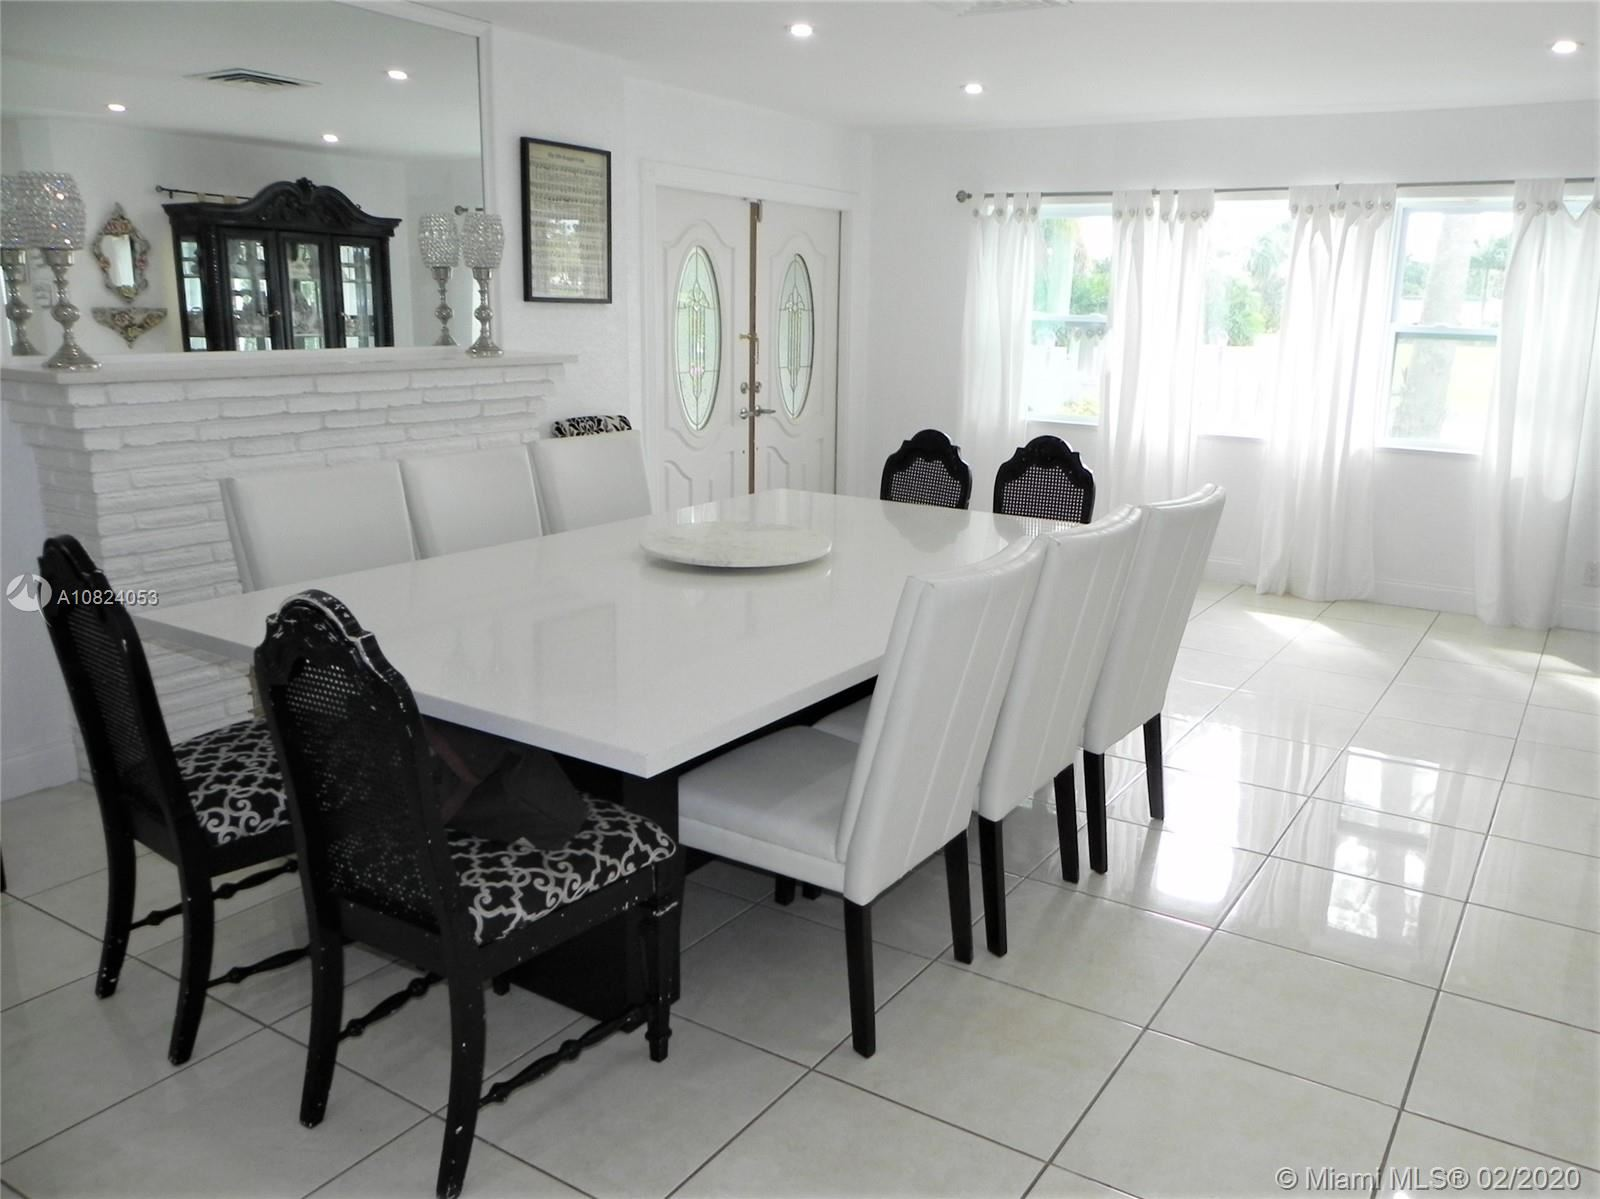 Photo 7 of Listing MLS a10824053 in 1531 Johnson St Hollywood FL 33020